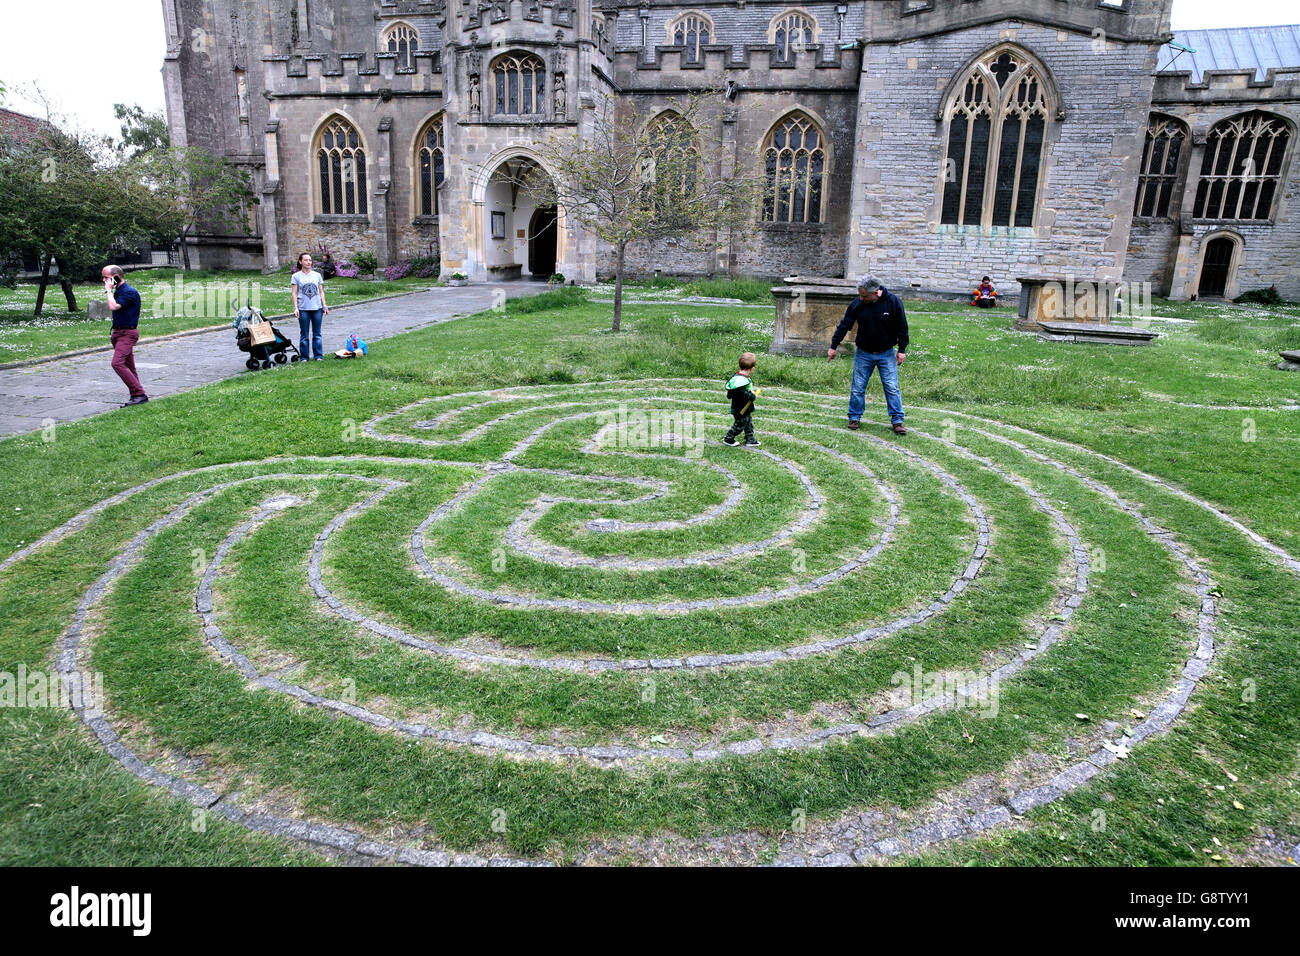 Maze in the churchyard of St John the Baptist, Glastonbury, Somerset. - Stock Image